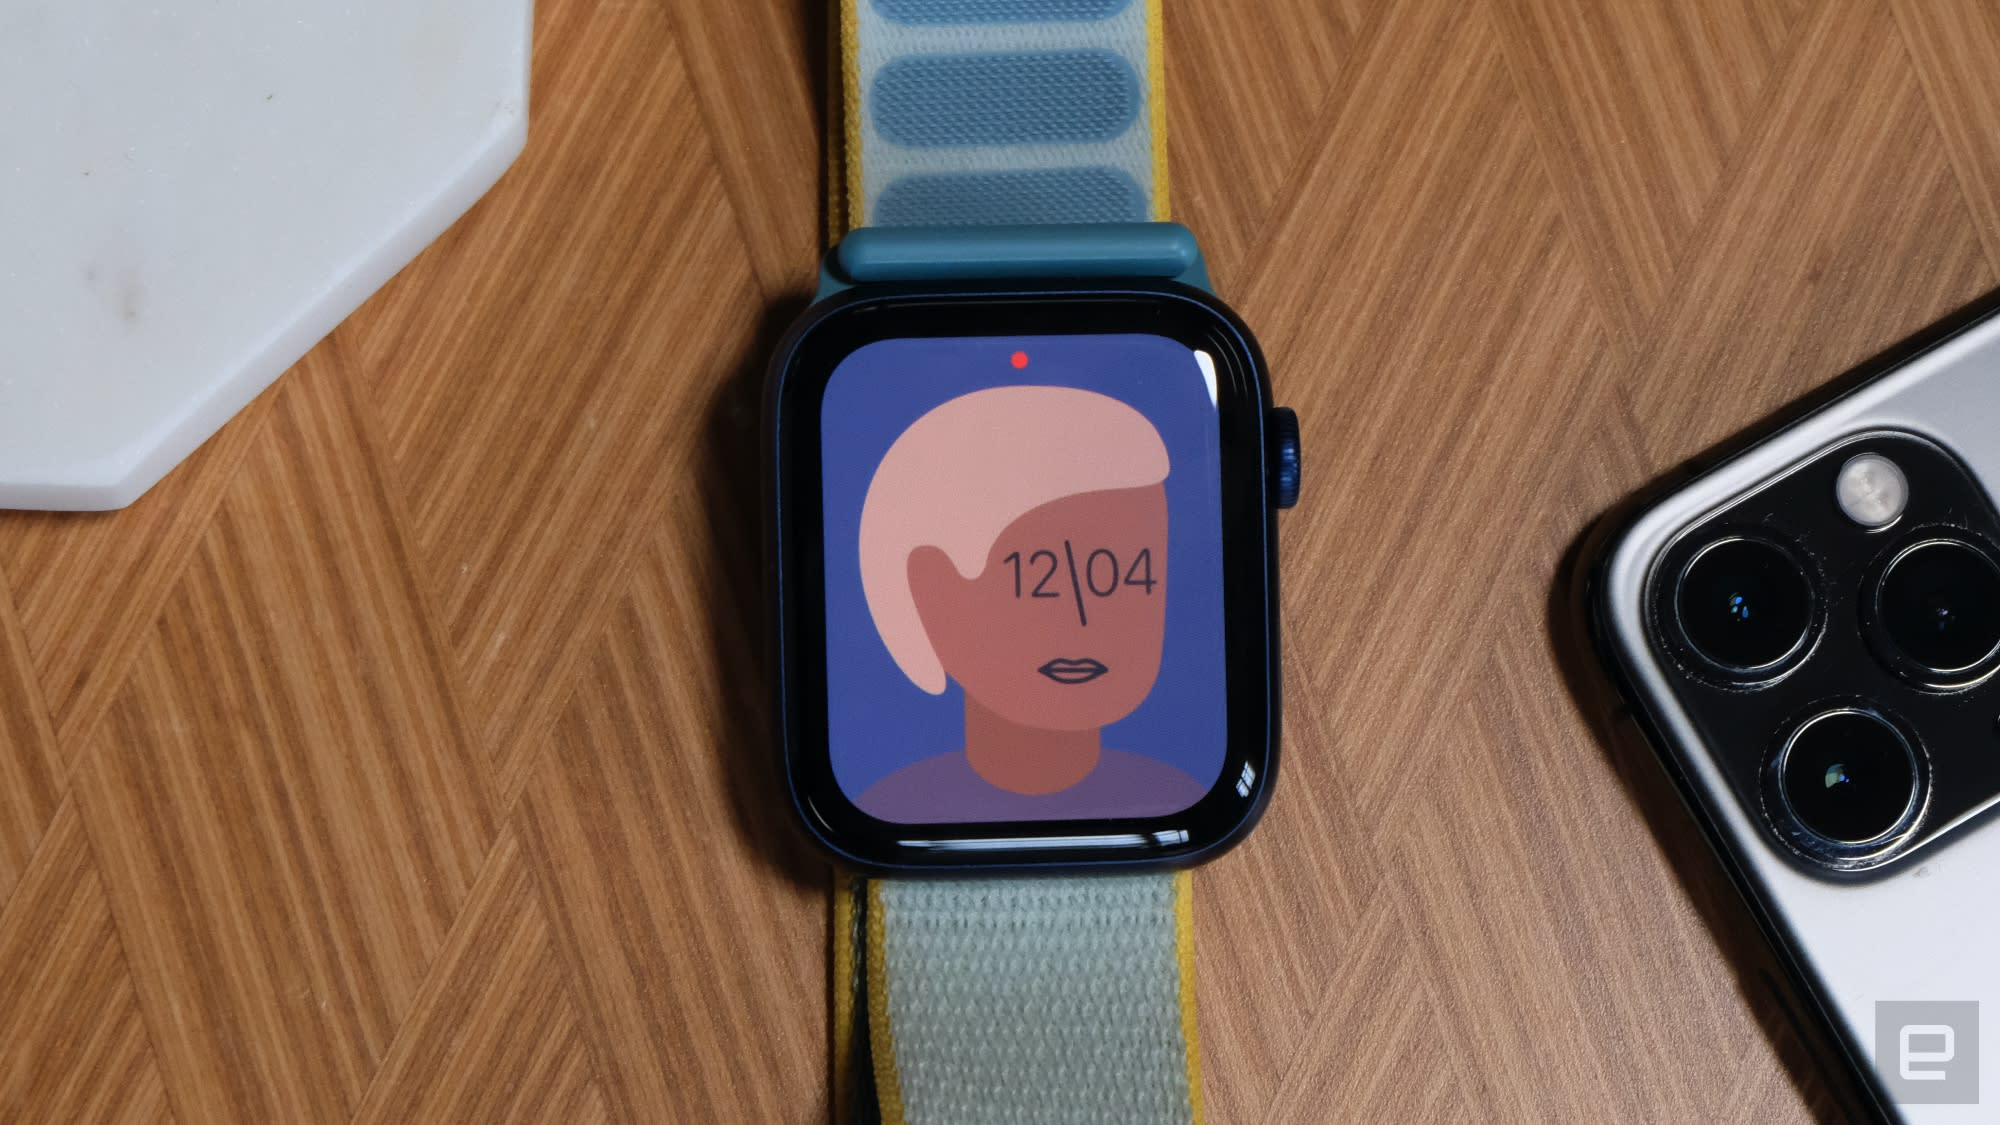 Engadget reviews the Apple Watch Series 6.